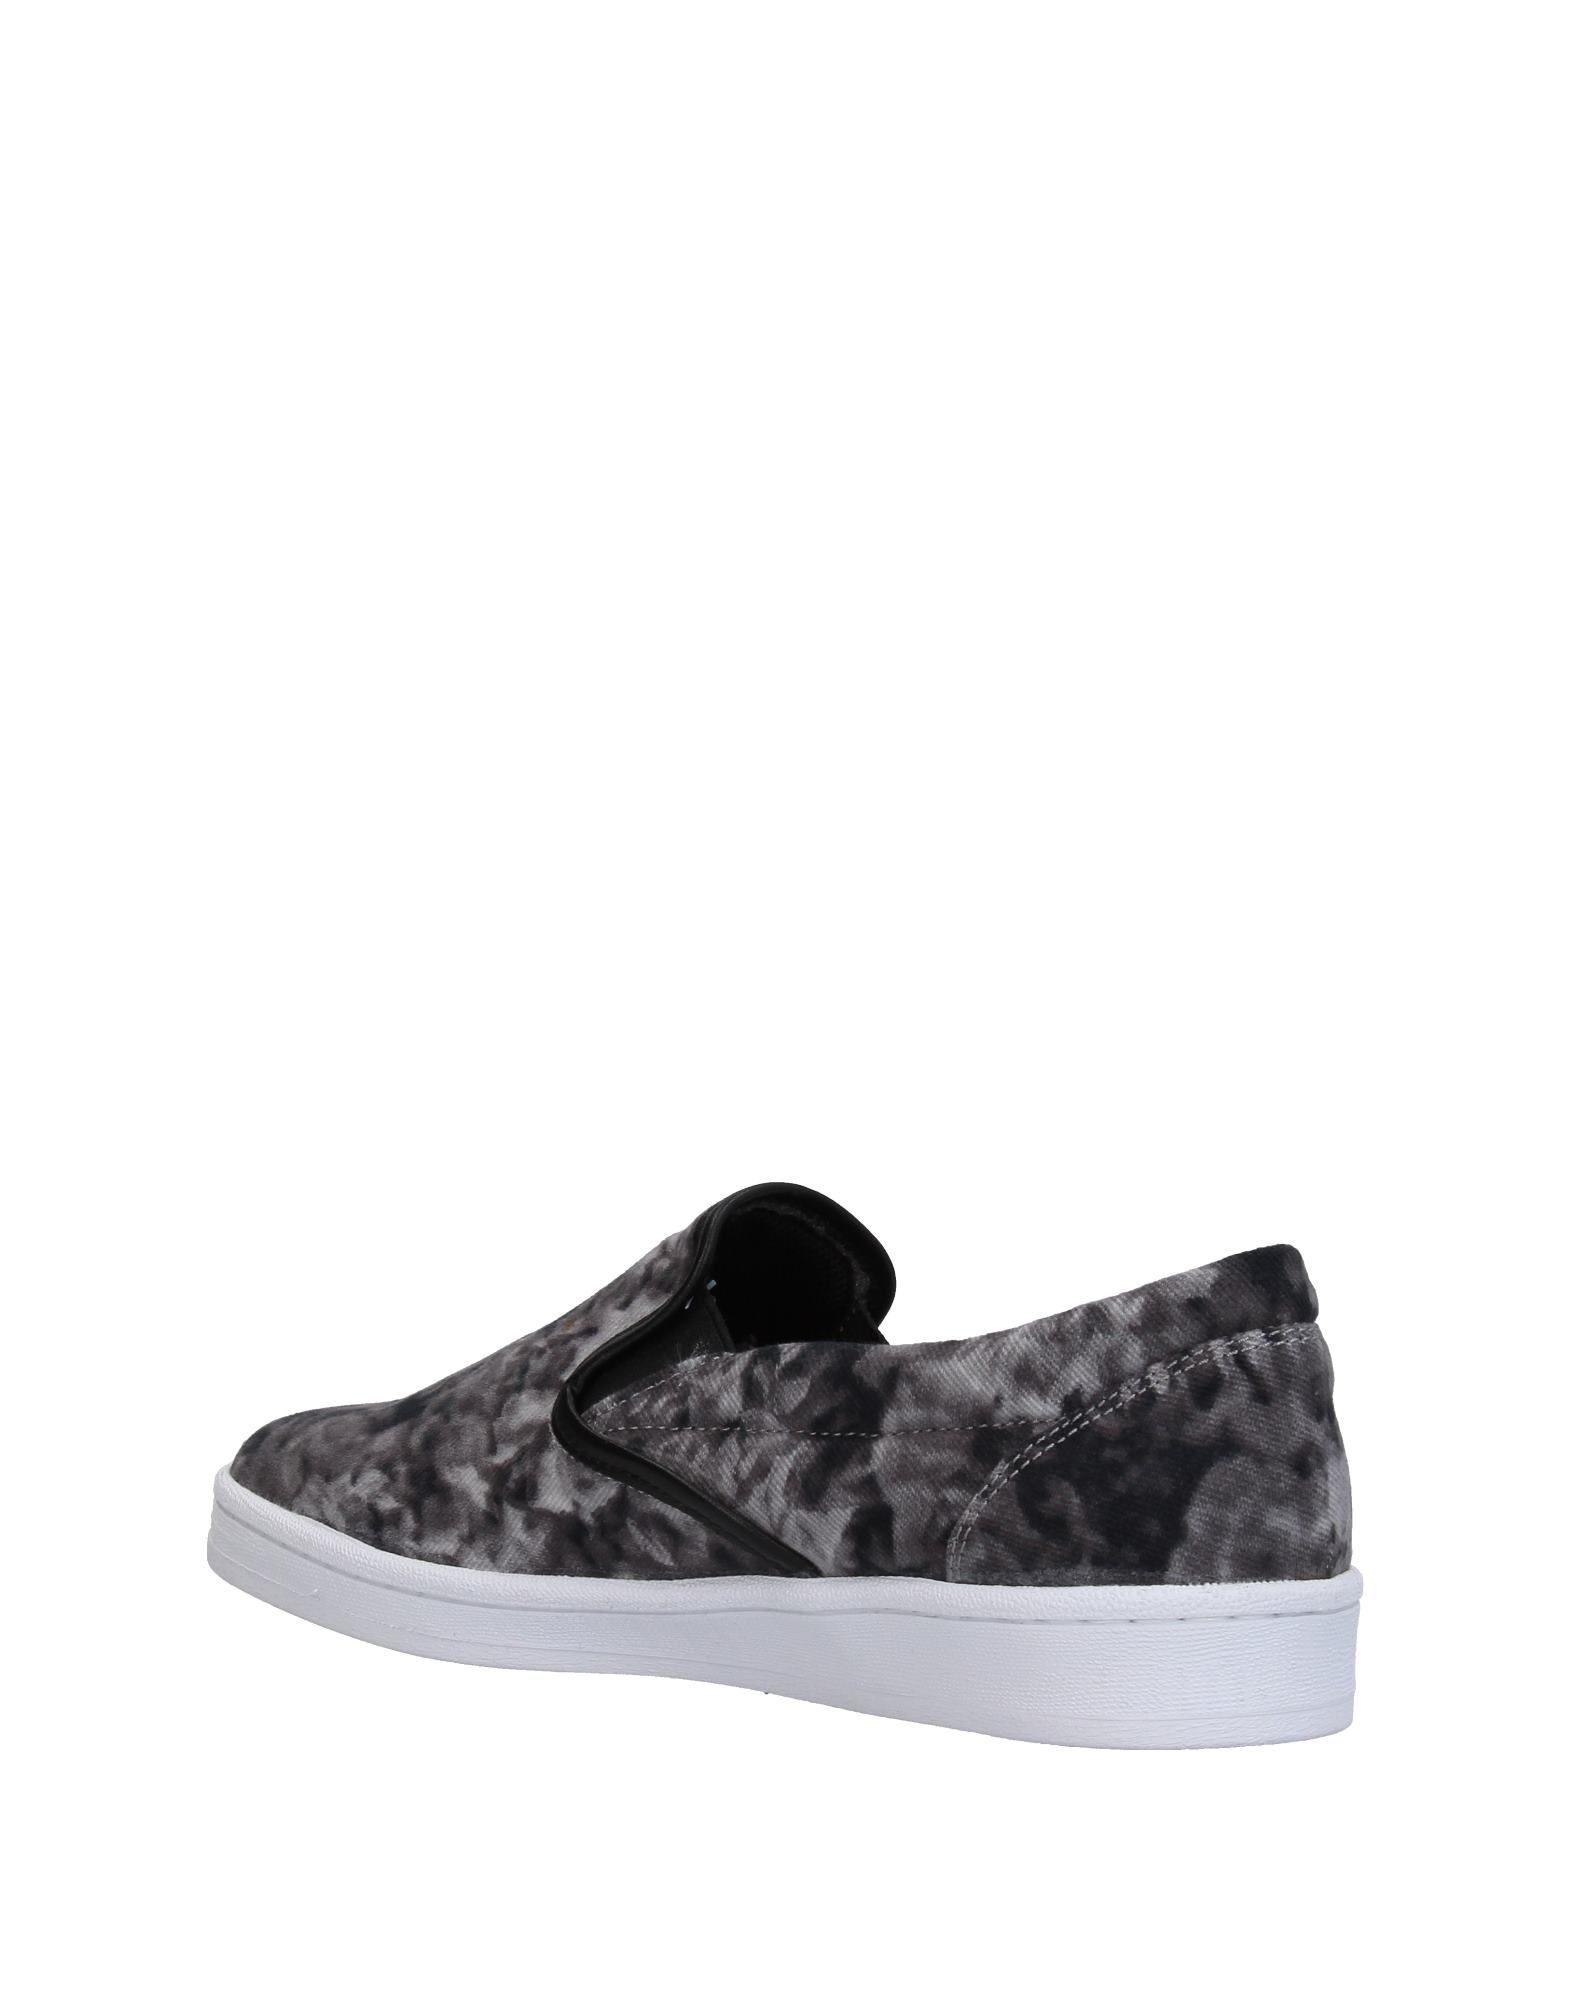 Sneakers Meltin Pot Femme - Sneakers Meltin Pot sur